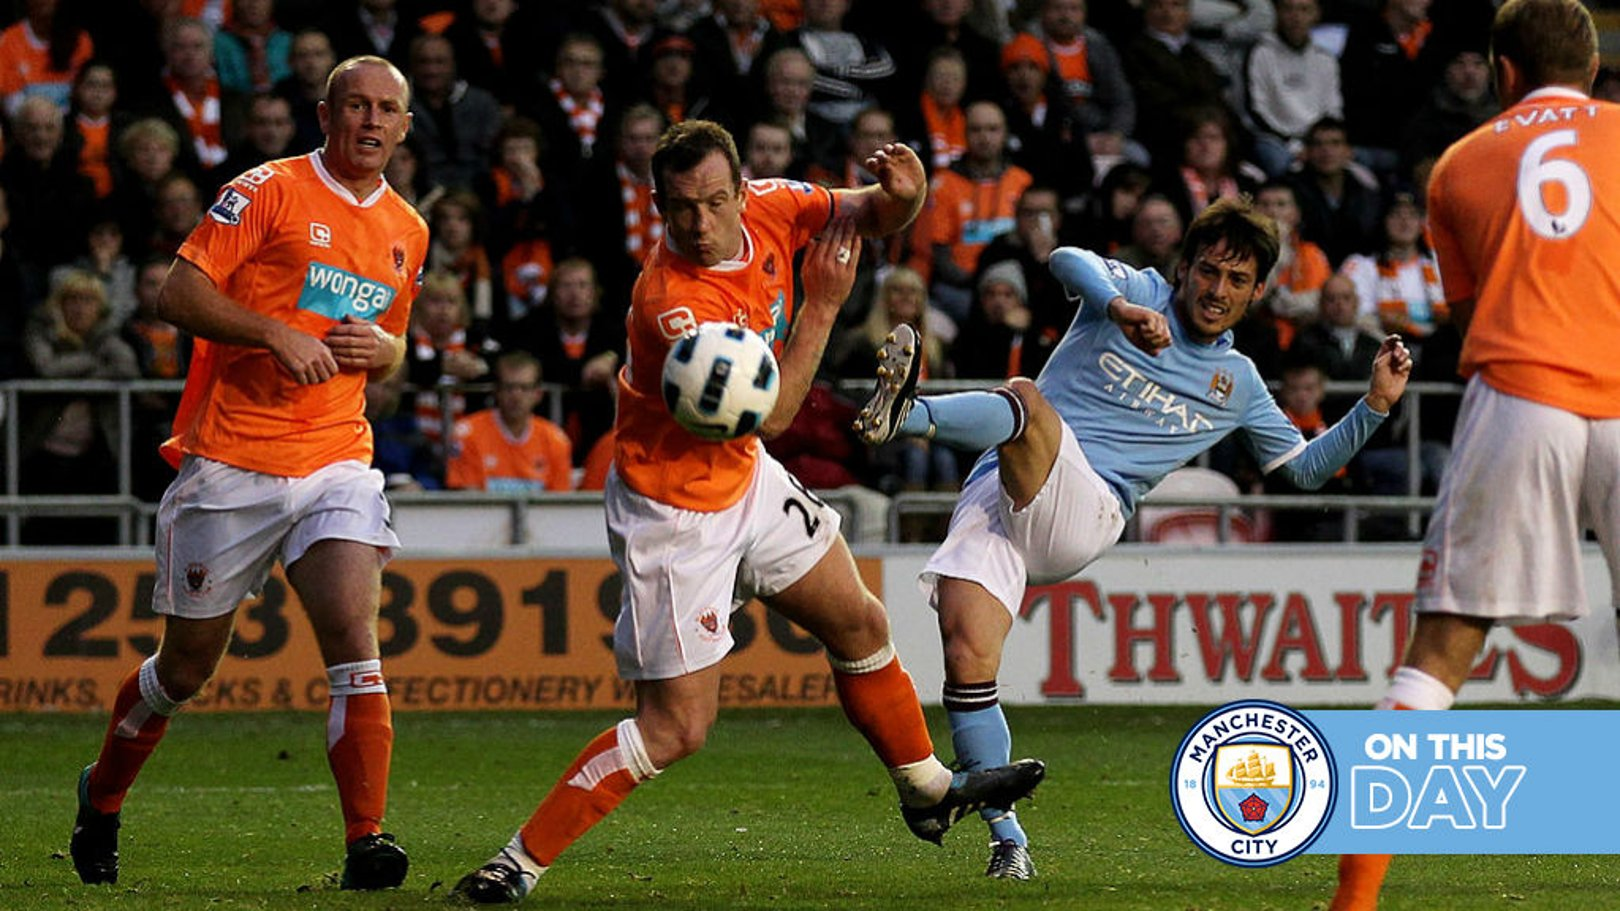 On this day: Silva's Blackpool gem and it's hats off to Sterling